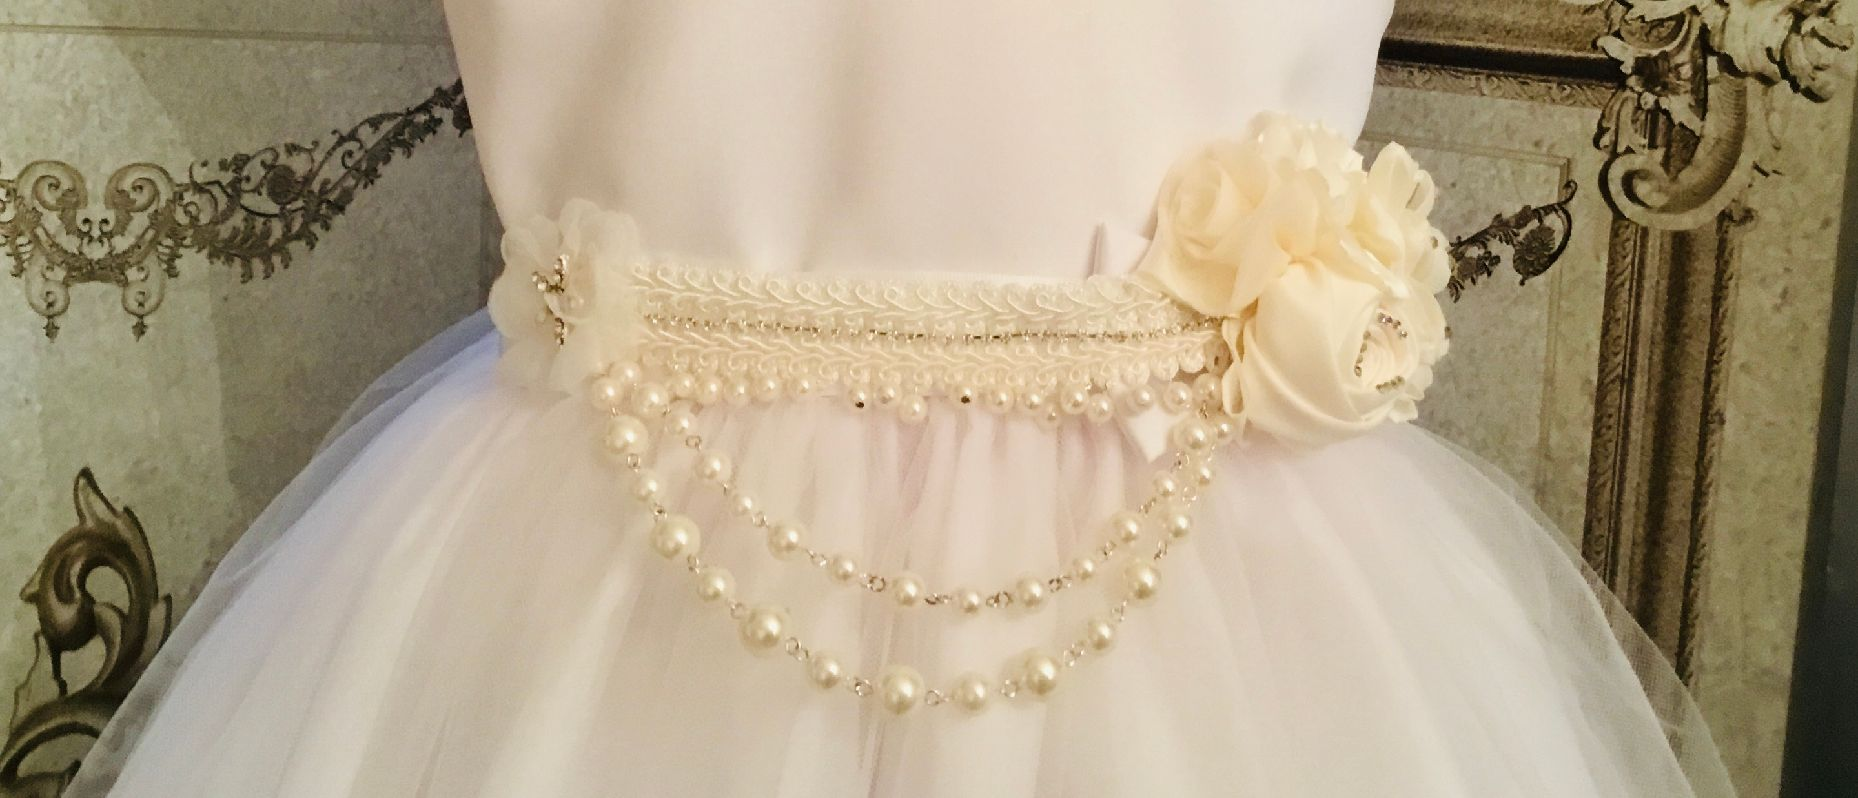 BBs -a- Ivory & pearls roses sash IPR